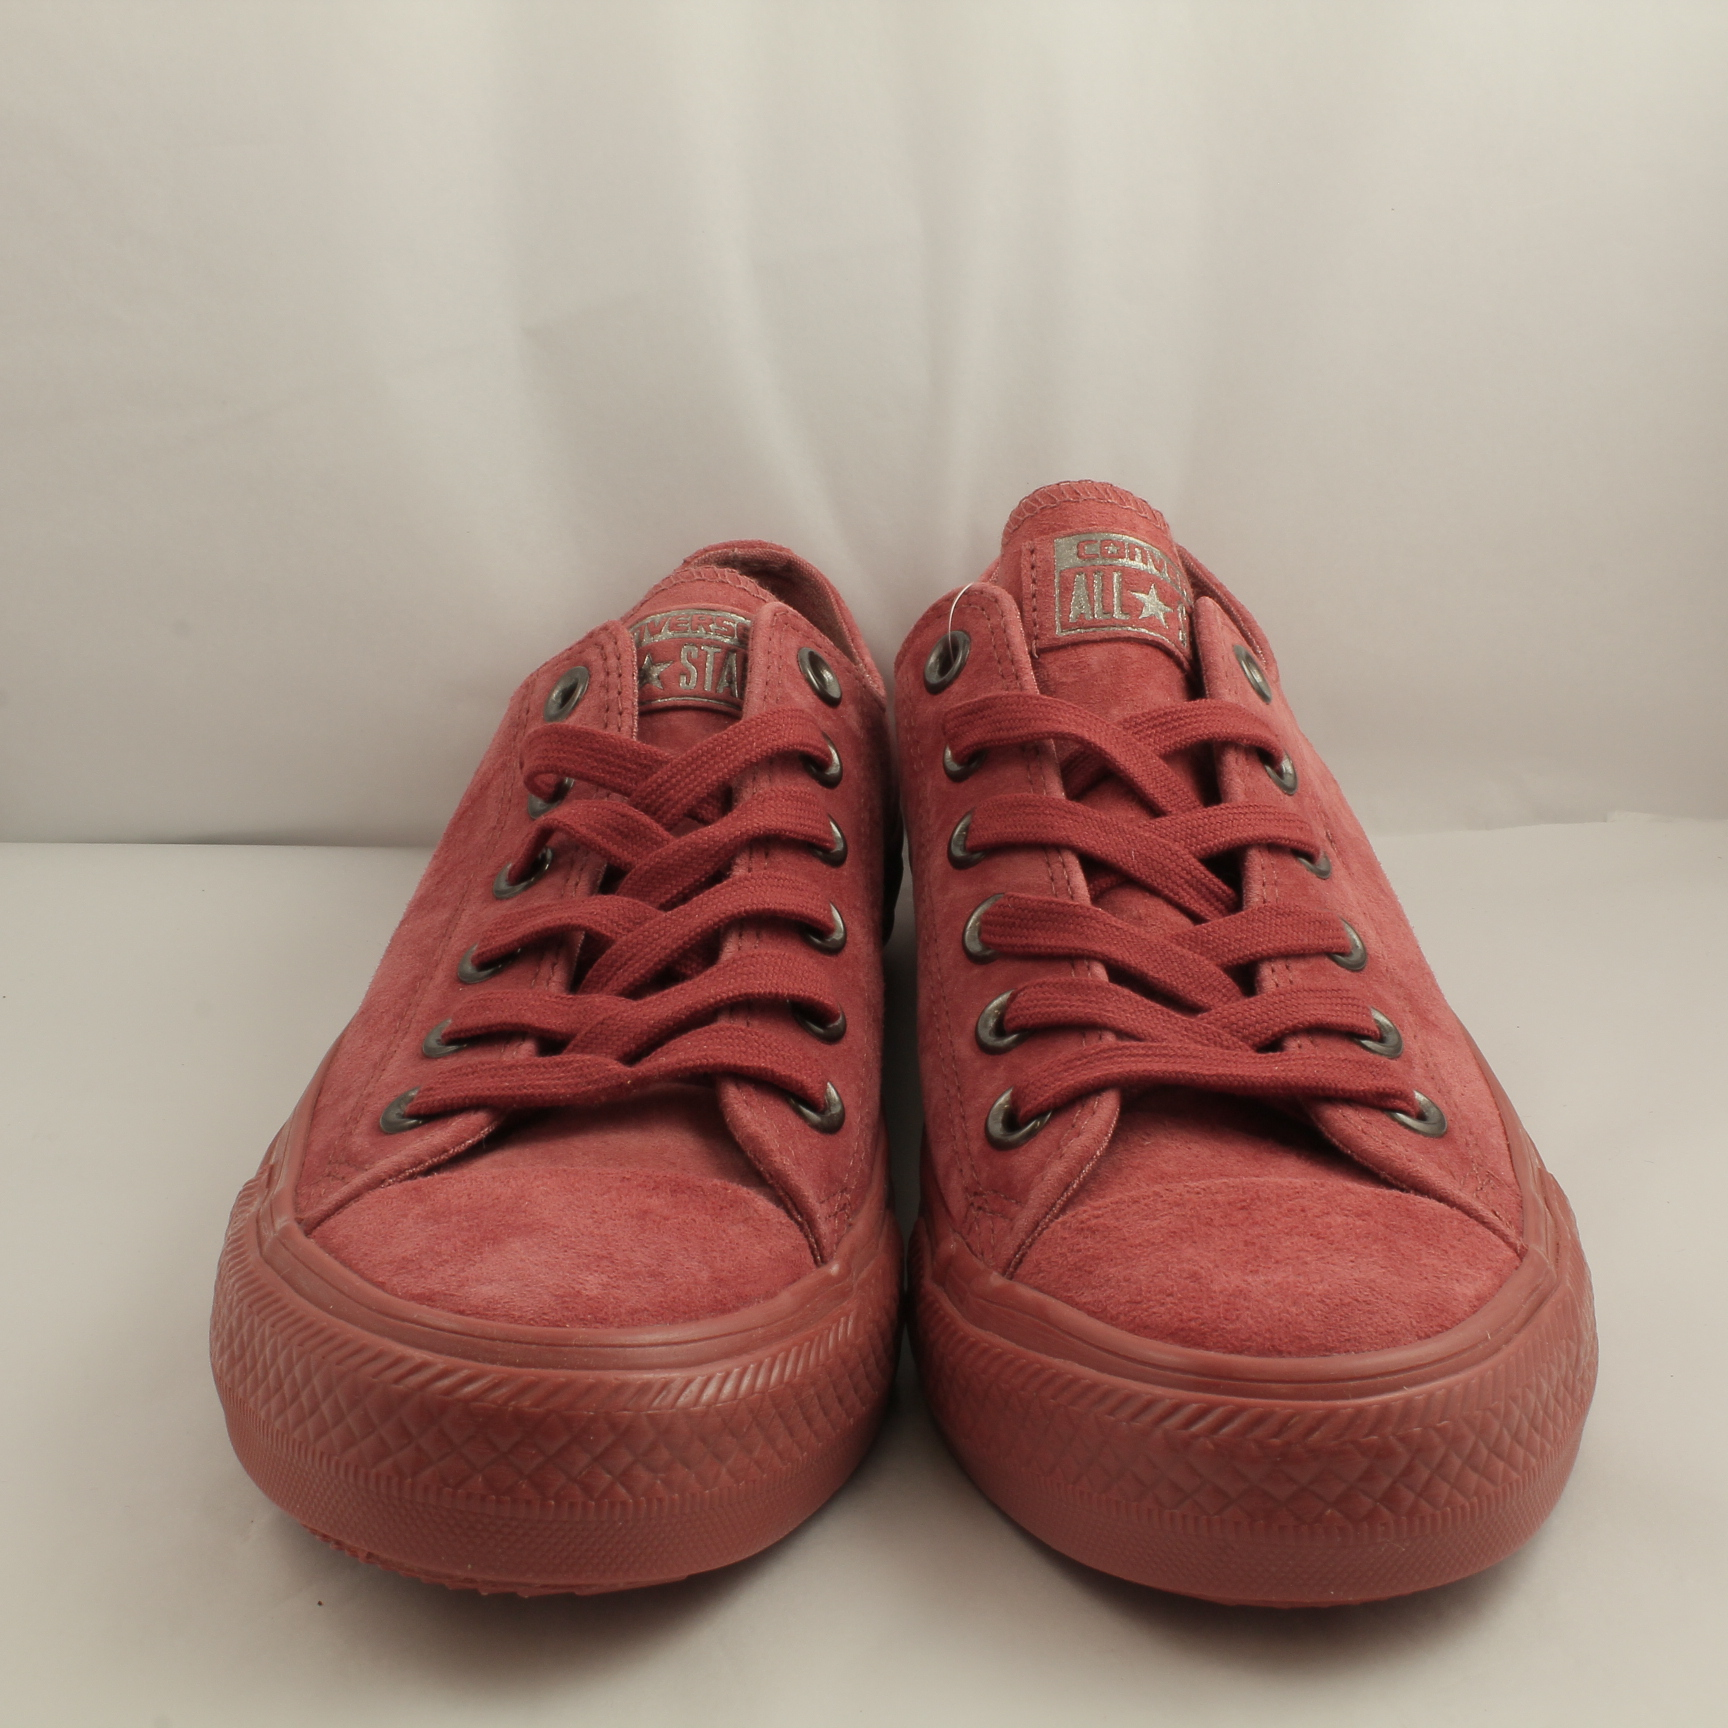 a83e91f9adcd Sentinel Thumbnail 1. Sentinel Mens Converse All star Low Leather ETRUSCAN  RED SUEDE Trainers Shoes ...